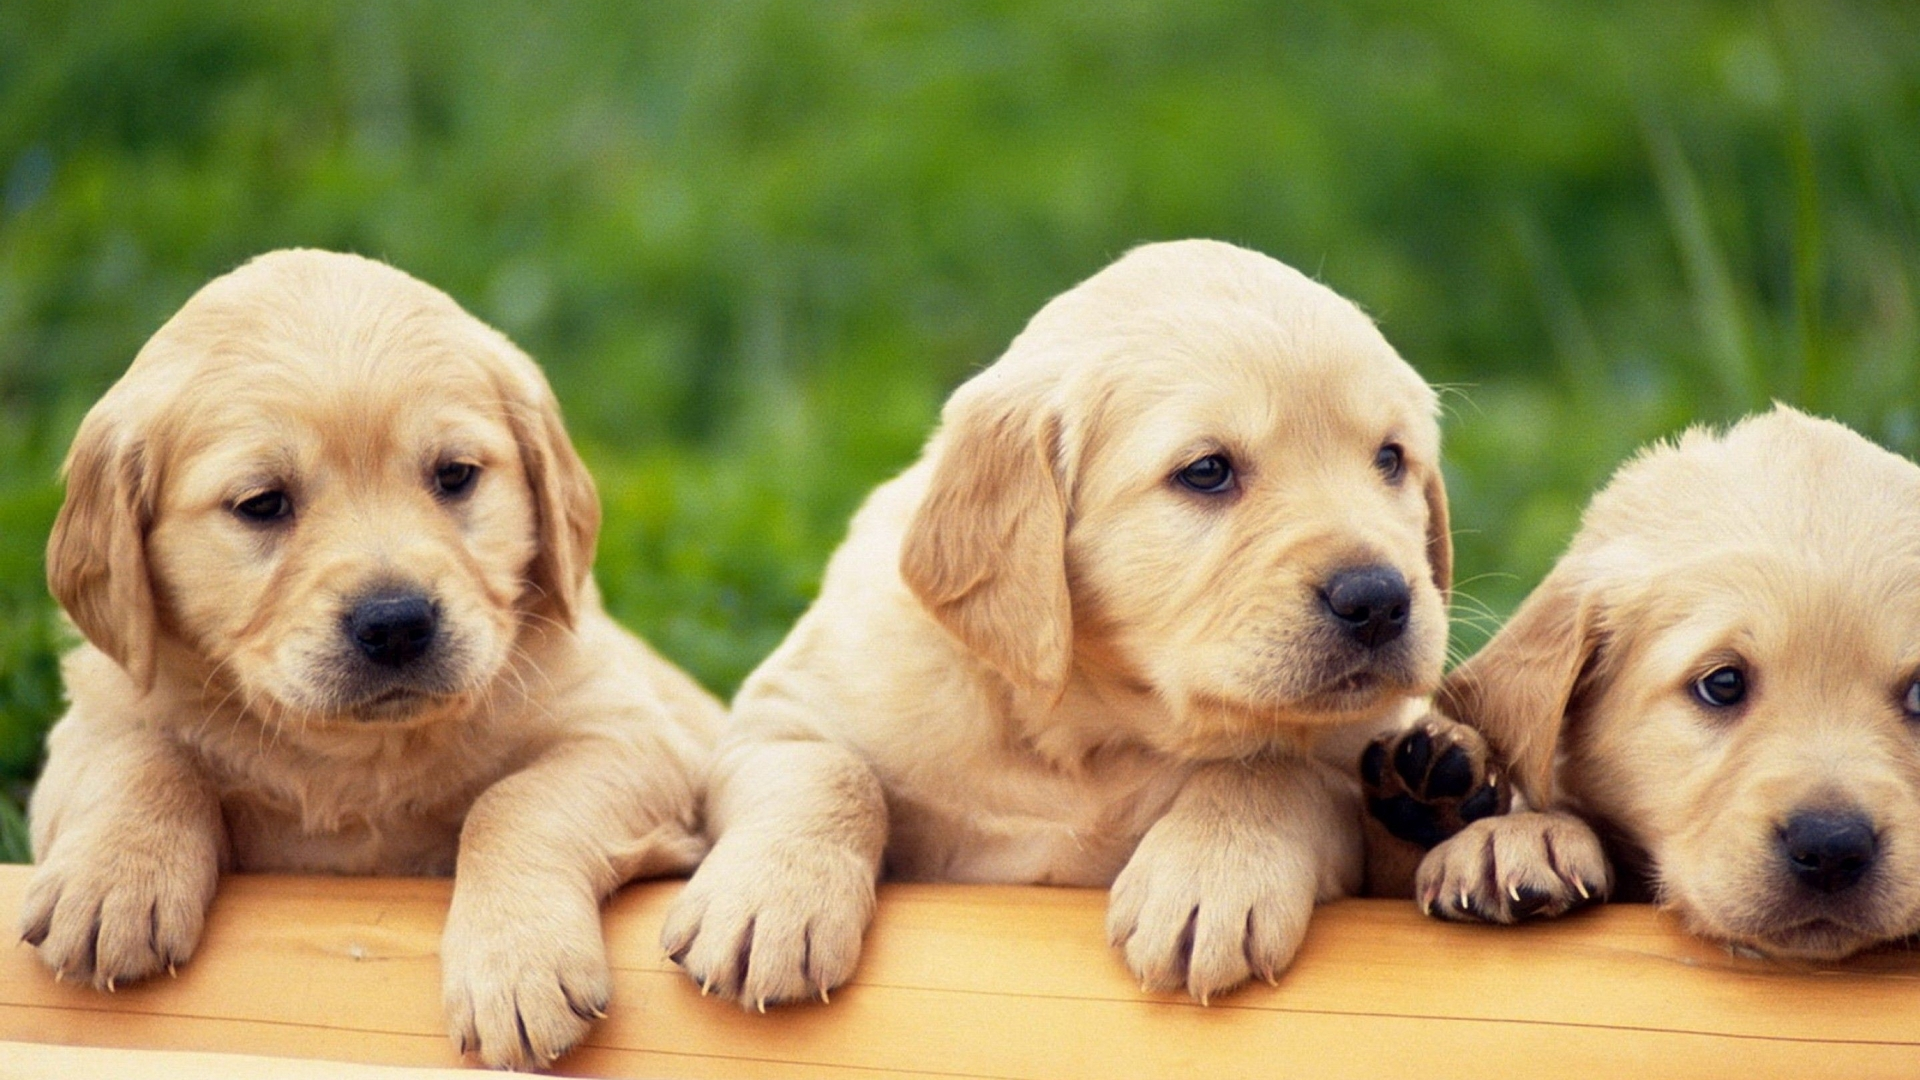 Golden Retriever Puppies Wallpaper High Definition High Quality Widescreen